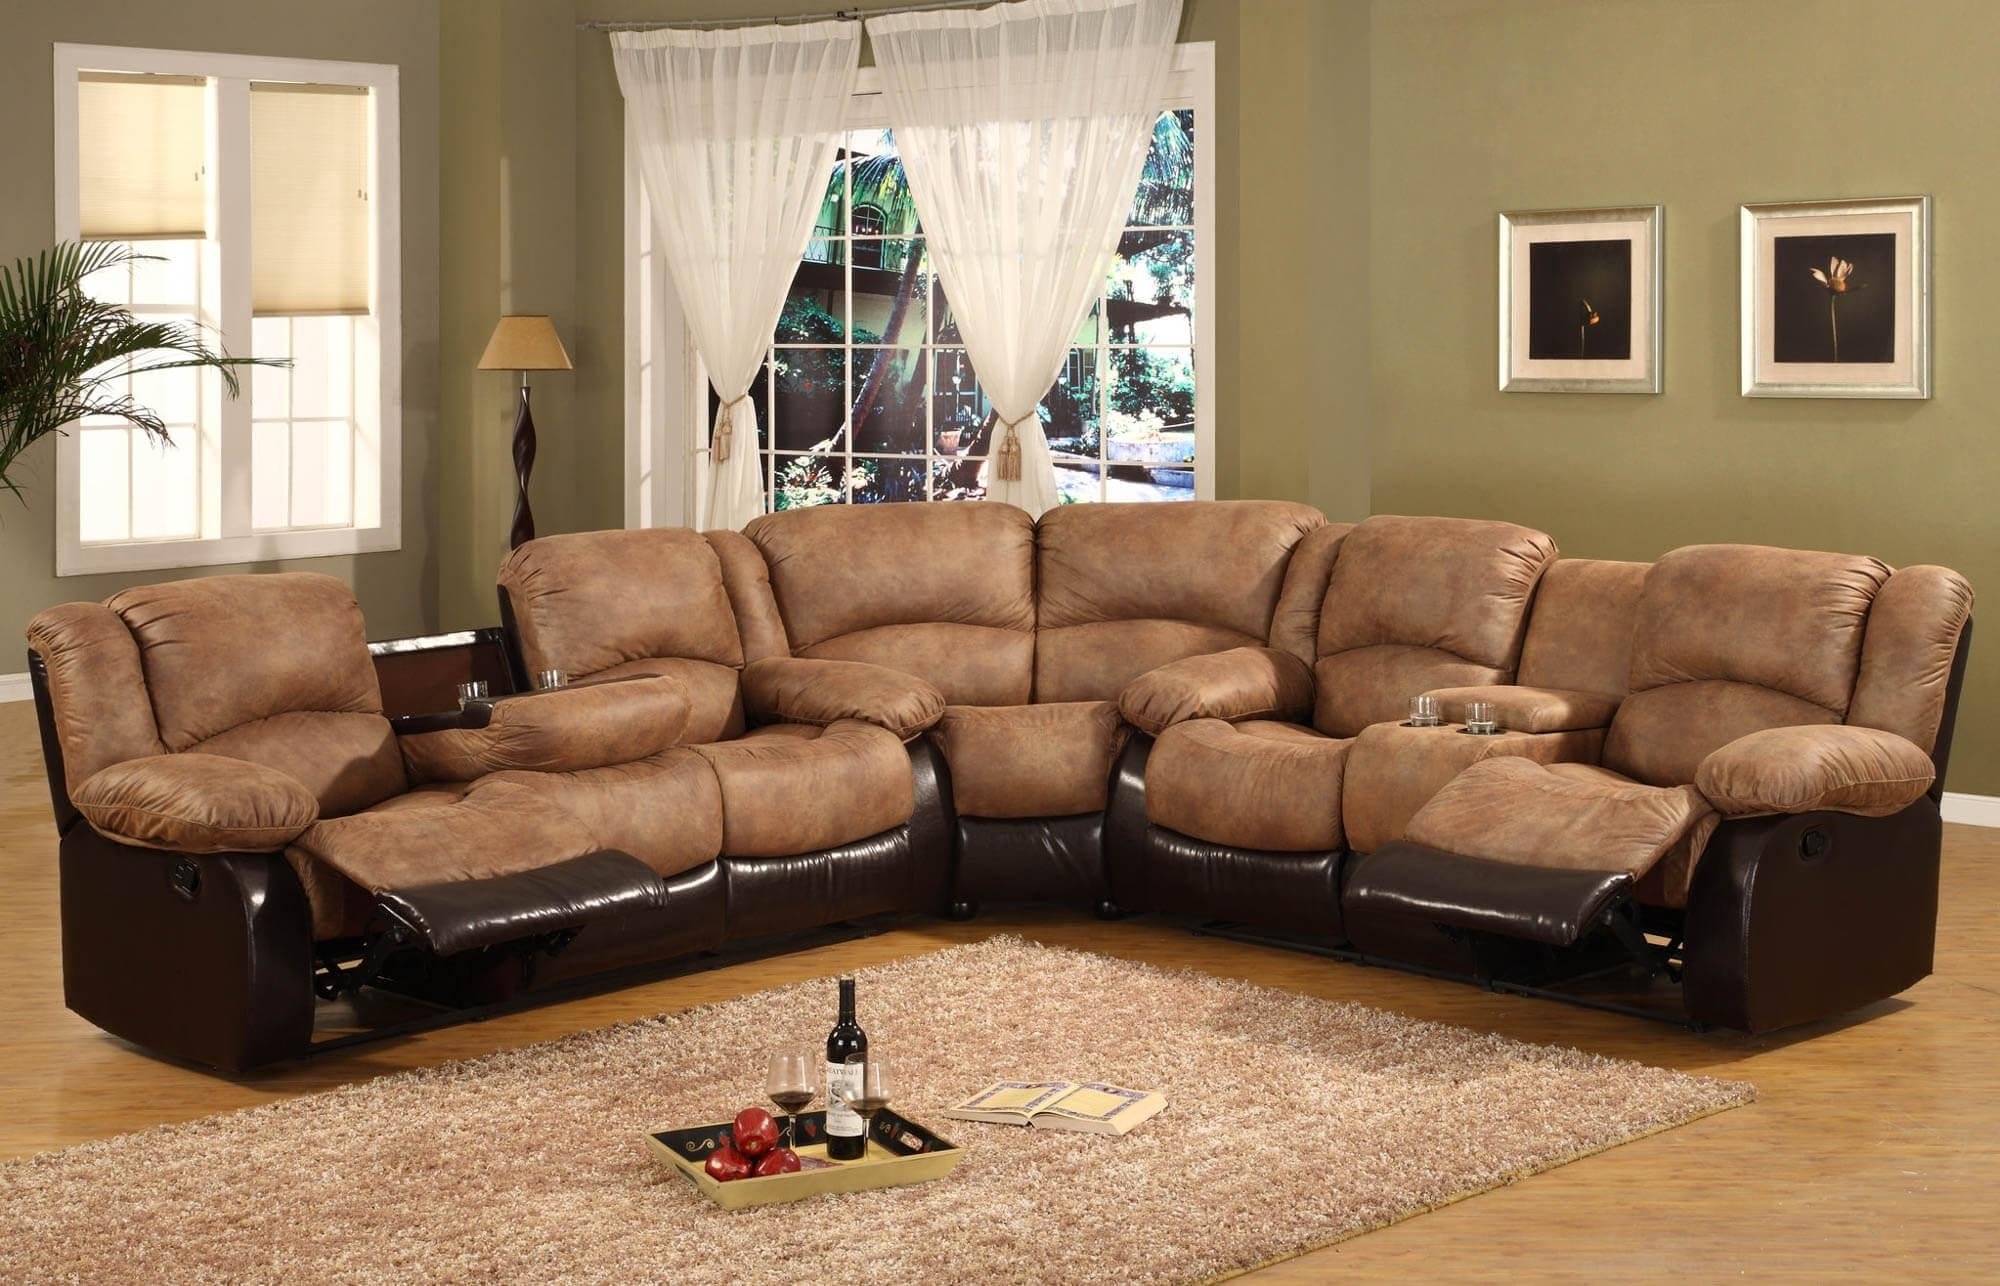 Sectional Sofa Craigslist | Sofa Gallery | Kengire Within Craigslist Sectional (Image 12 of 15)